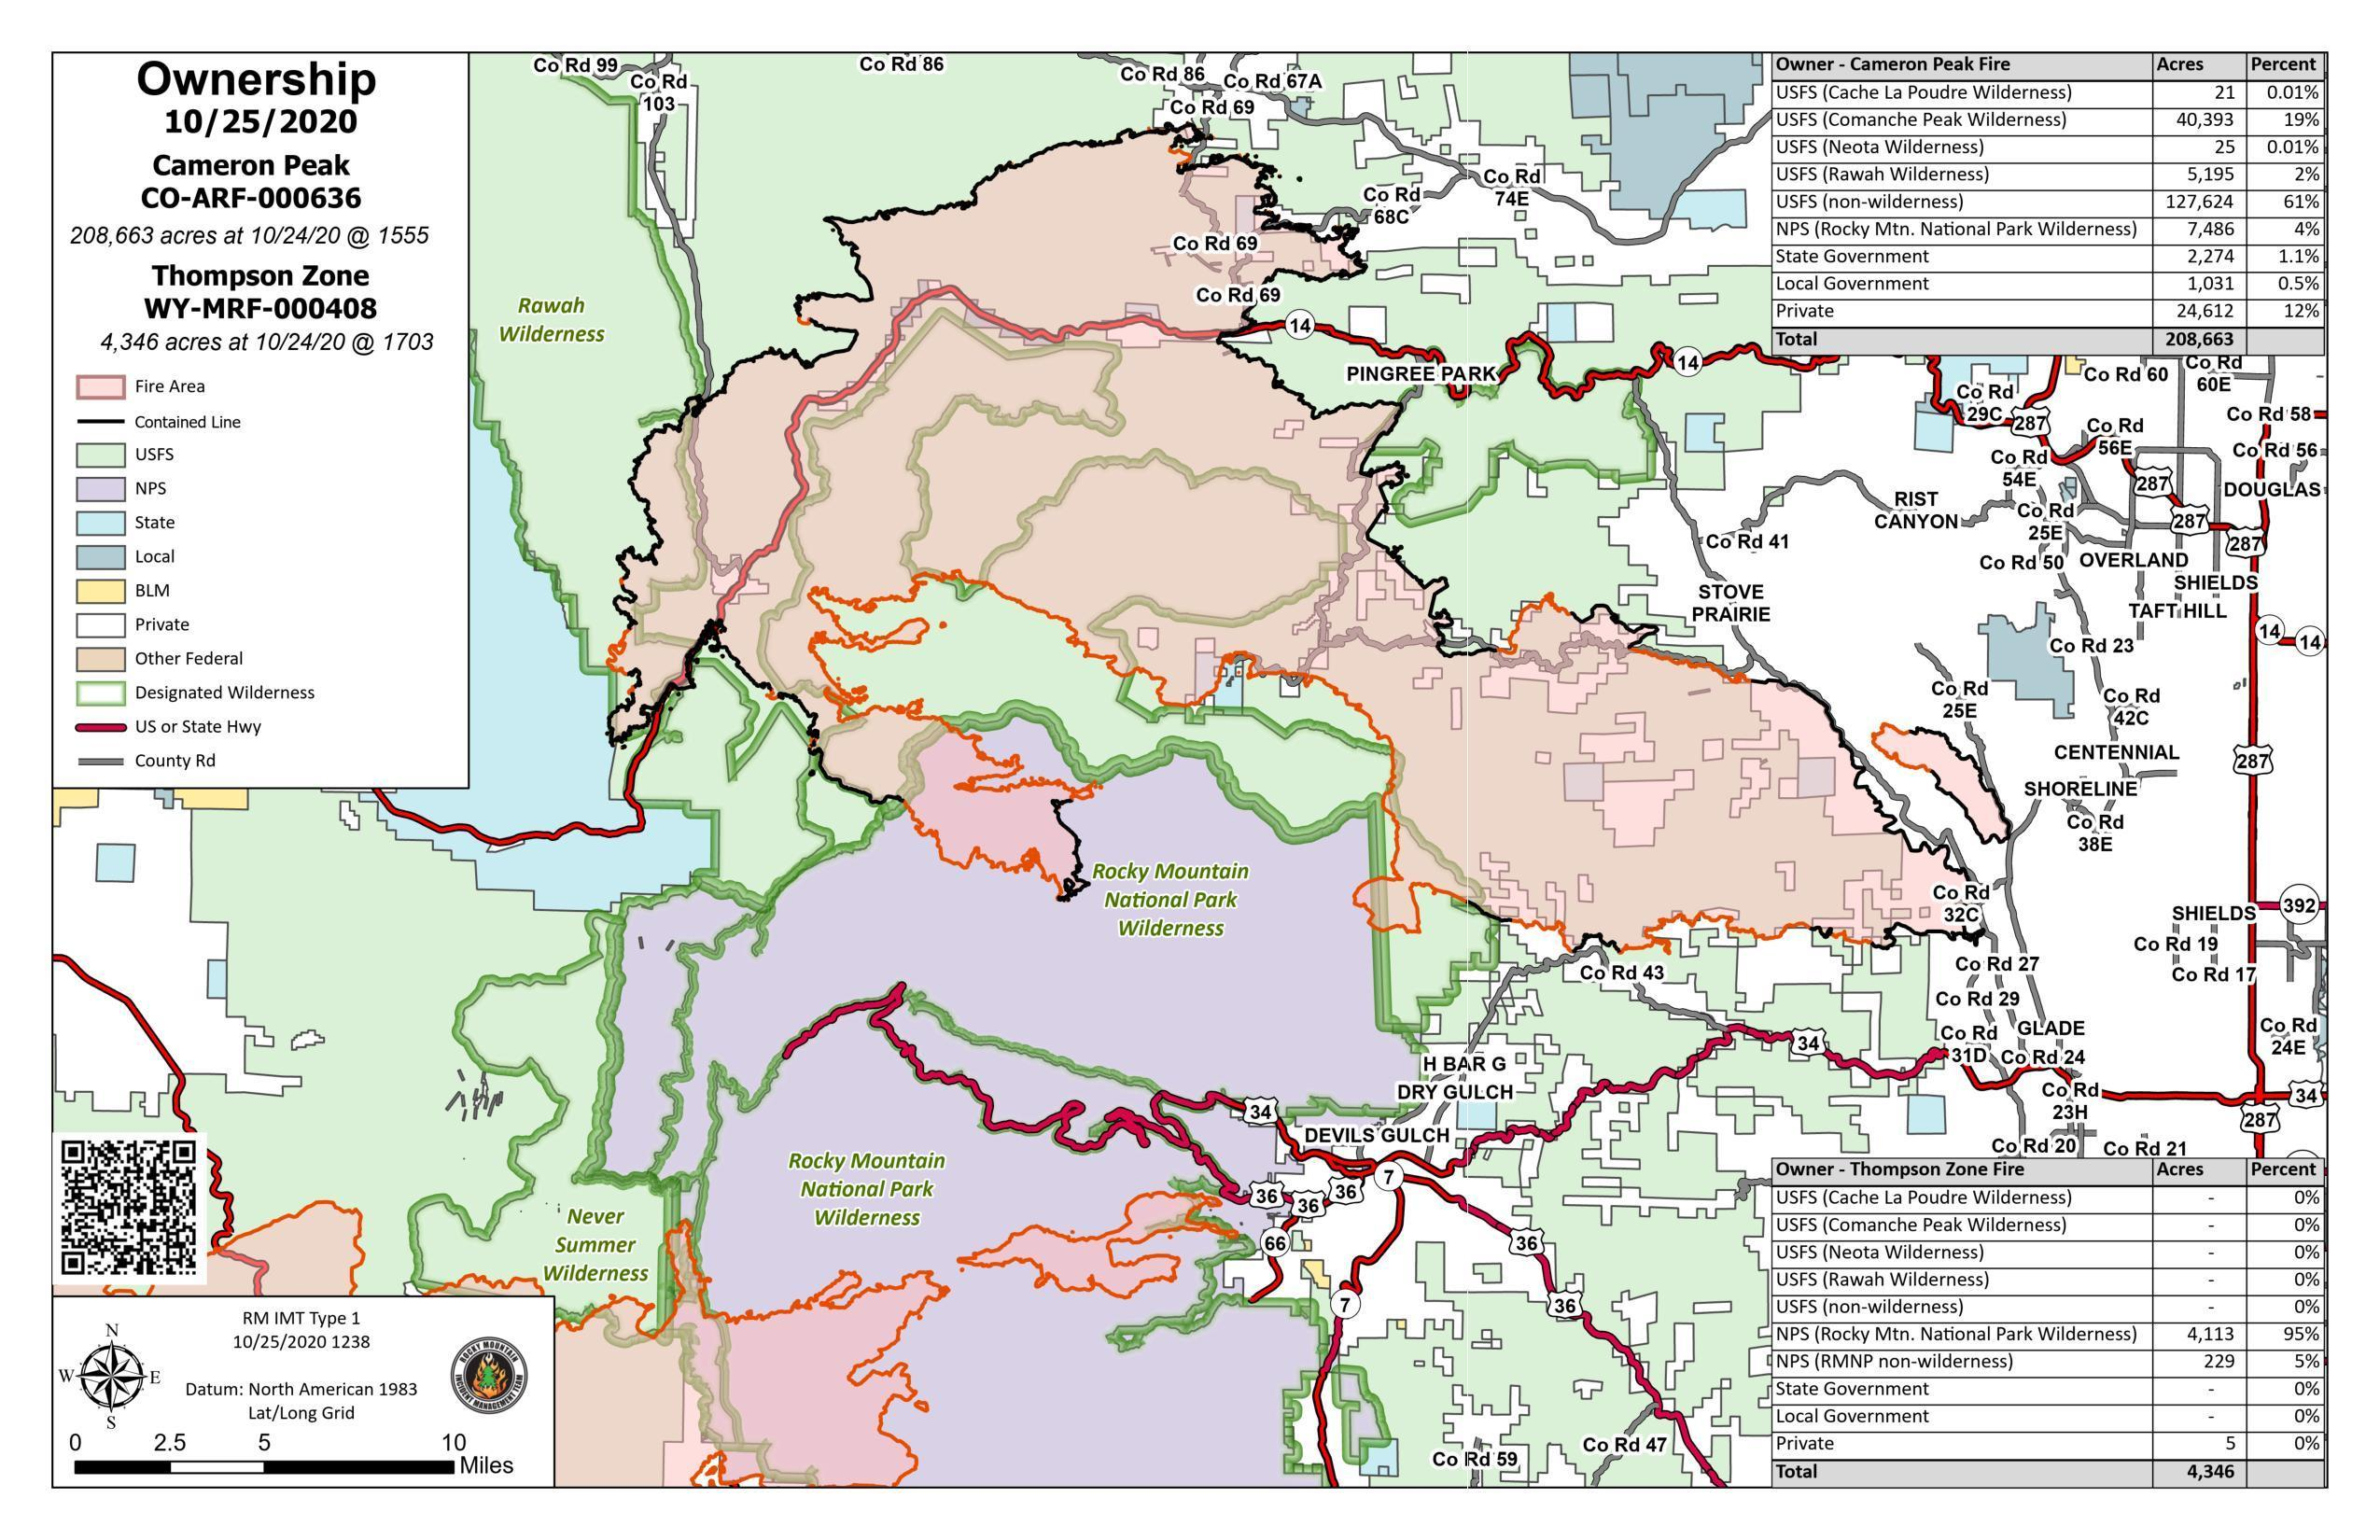 ownership map showing portion of land within fire perimeter